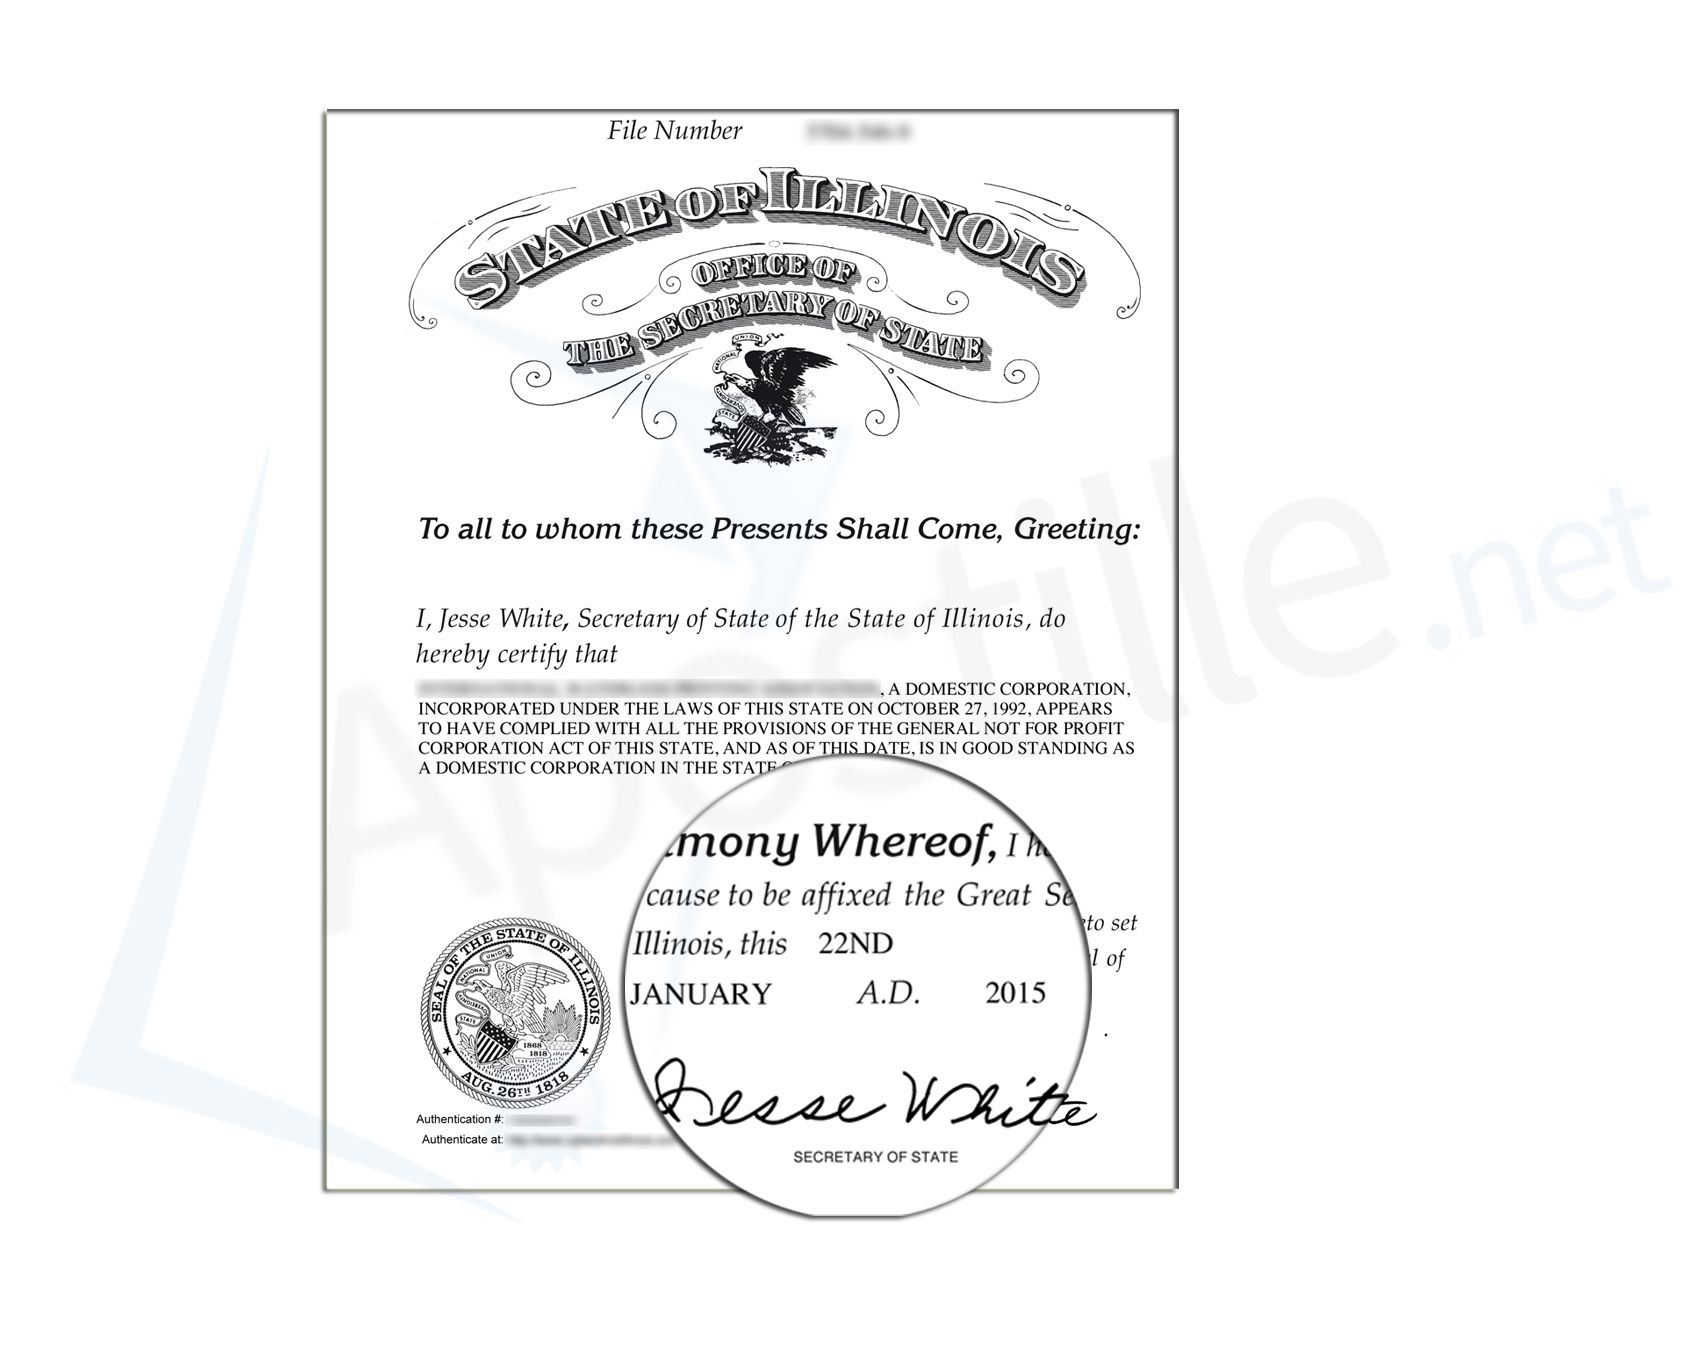 State of illinois certificate of good standing signed by jesse state of illinois certificate of good standing signed by jesse white secretary of state xflitez Choice Image